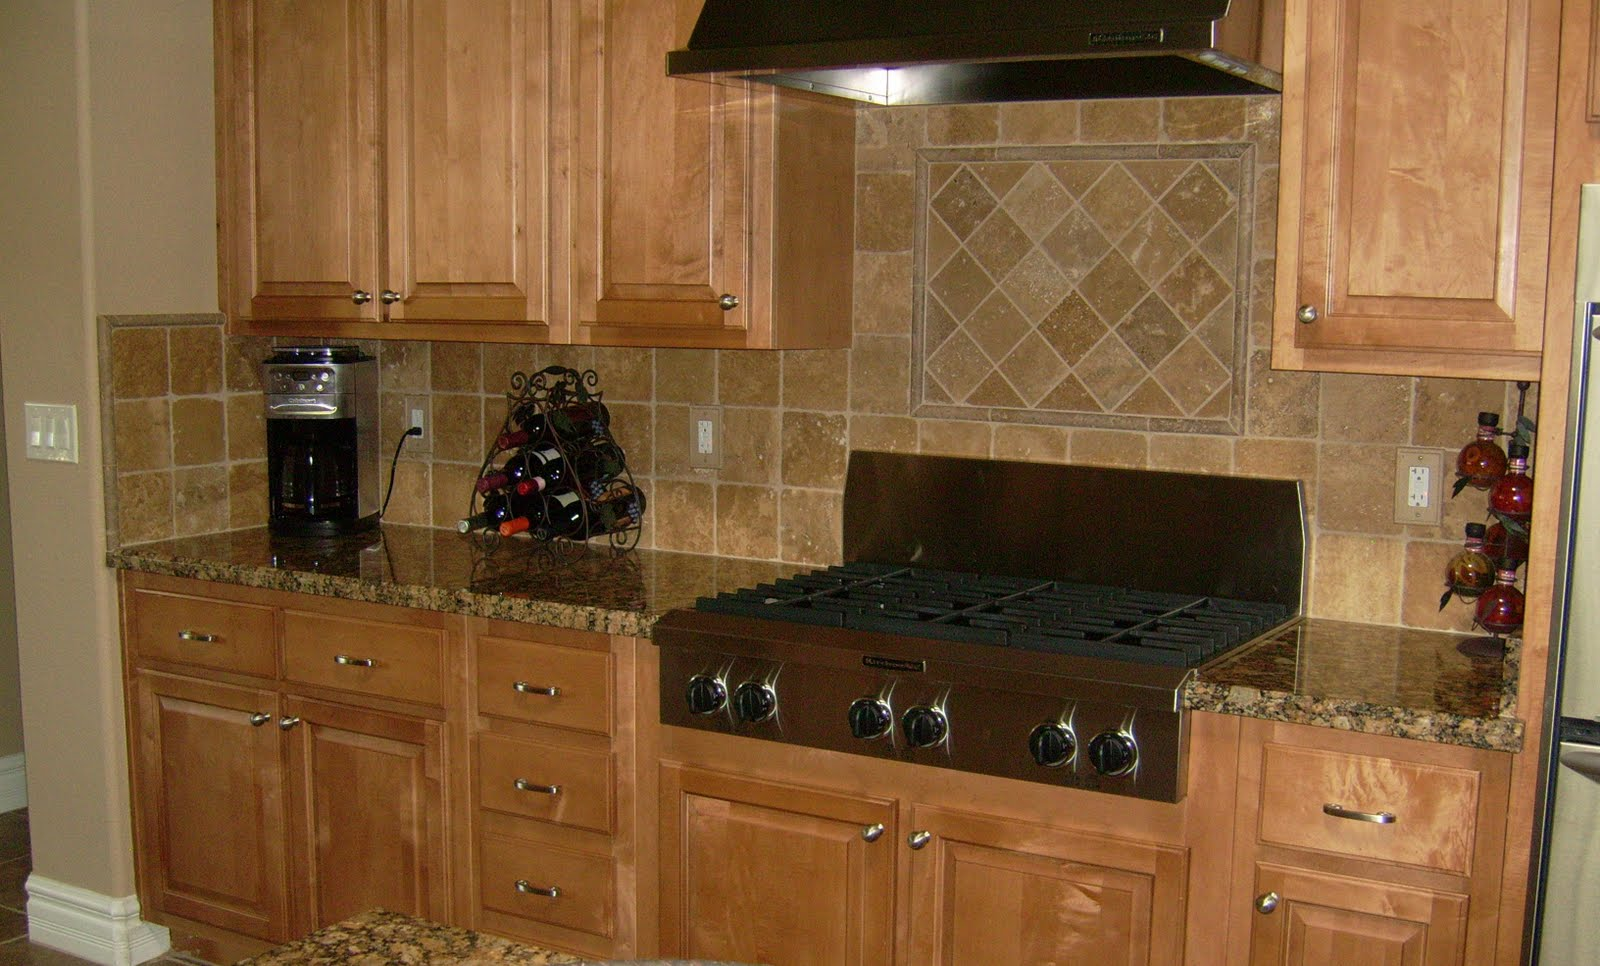 Pictures kitchen backsplash ideas Kitchen tile backsplash